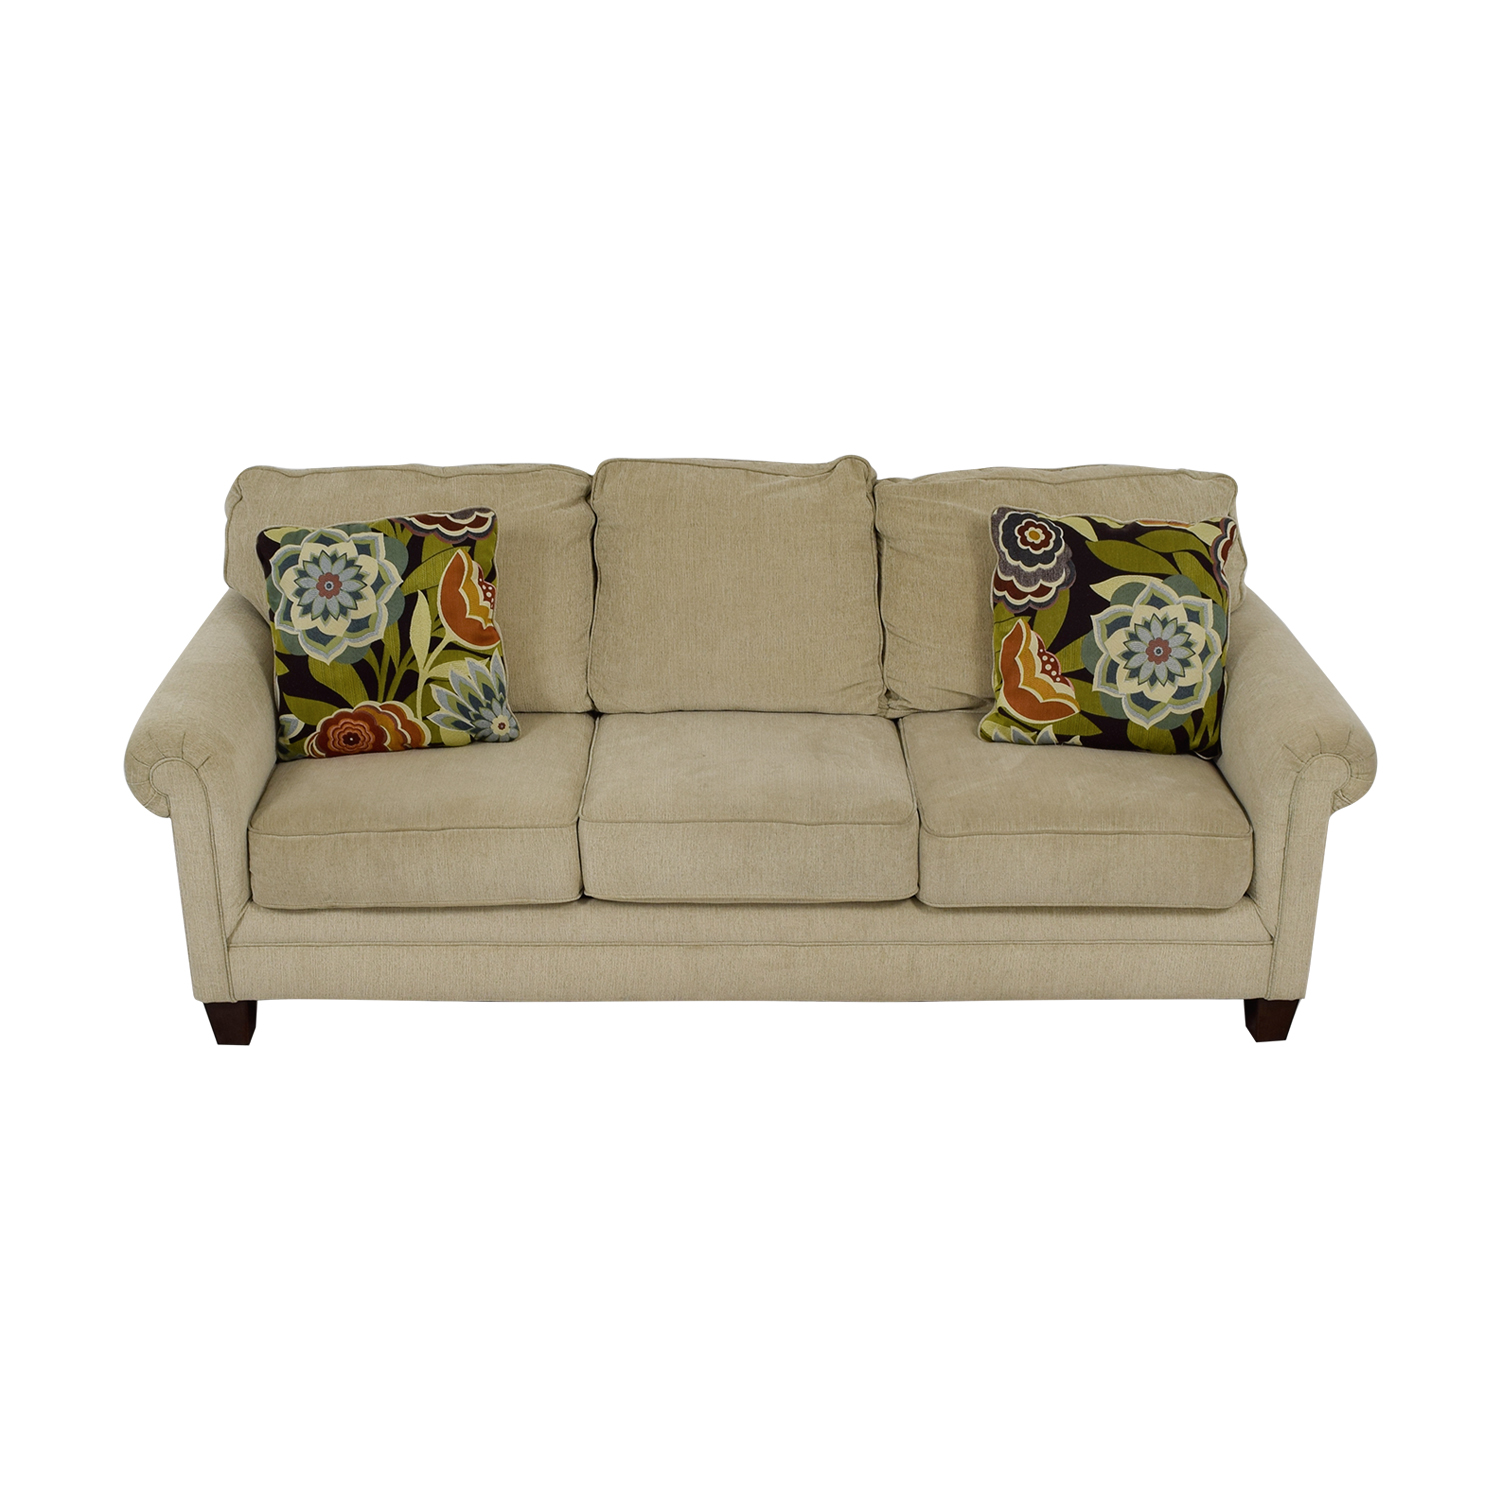 Ashley Furniture Tan Aldy Three Seat Sofa sale